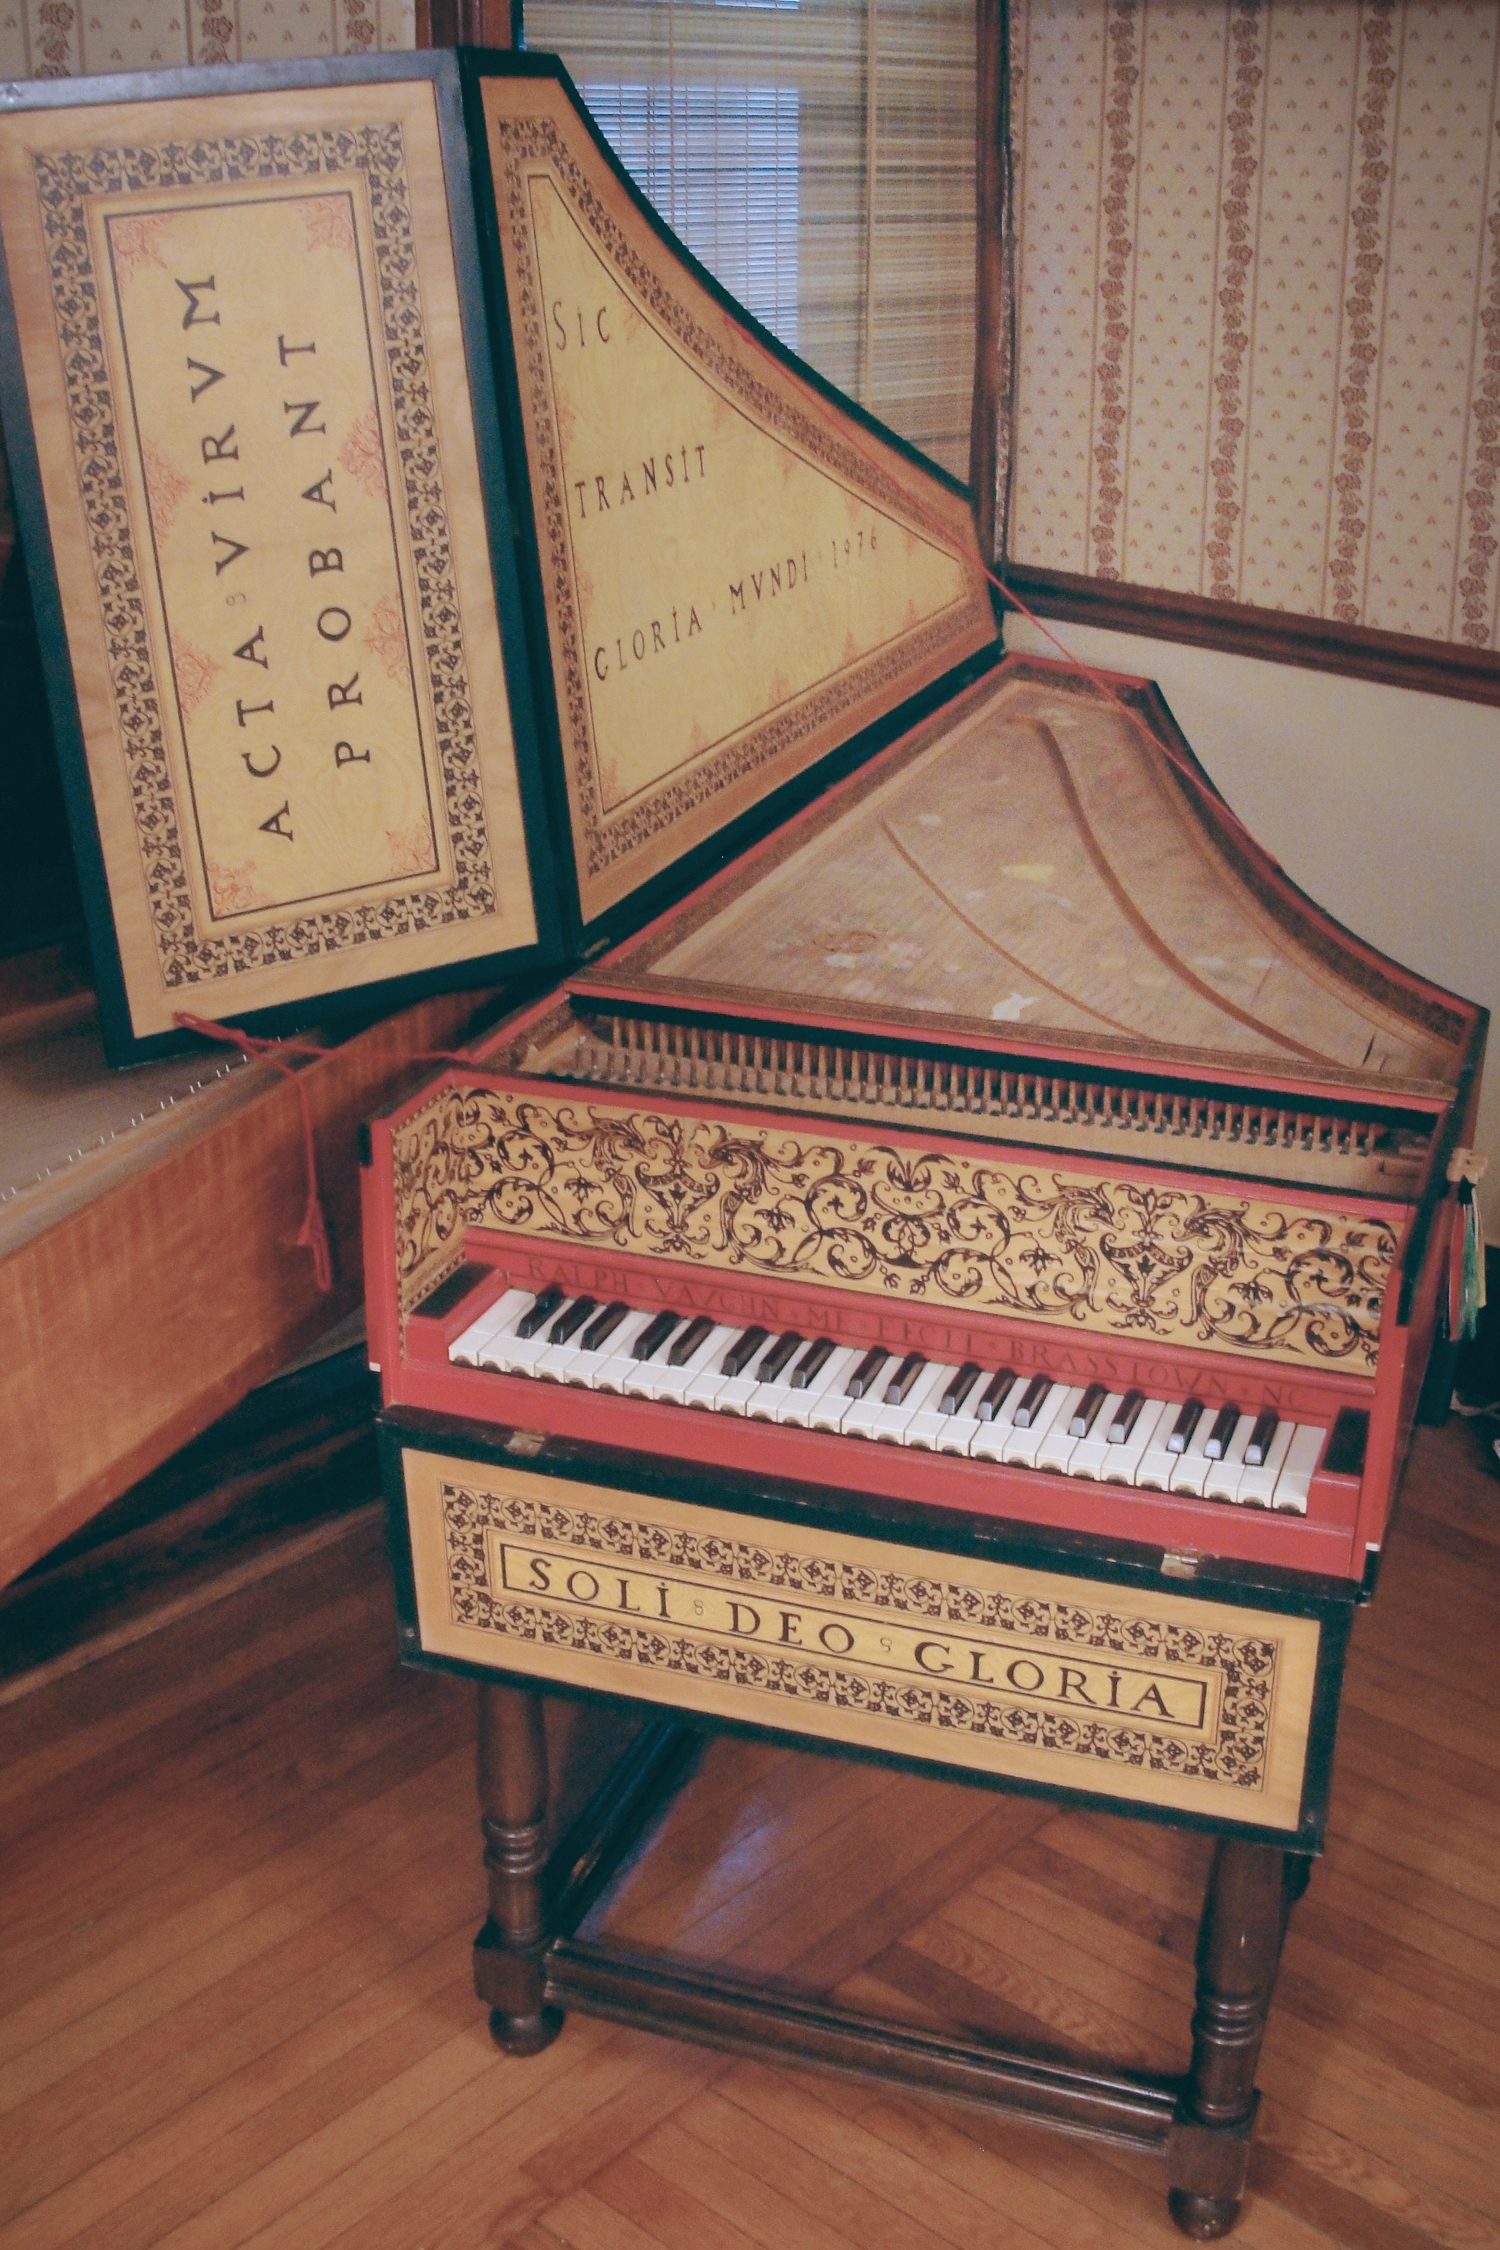 A Flemish instrument copy of an Andreas Ruckers harpsichord (in Kirnberger's 3rd temperament)